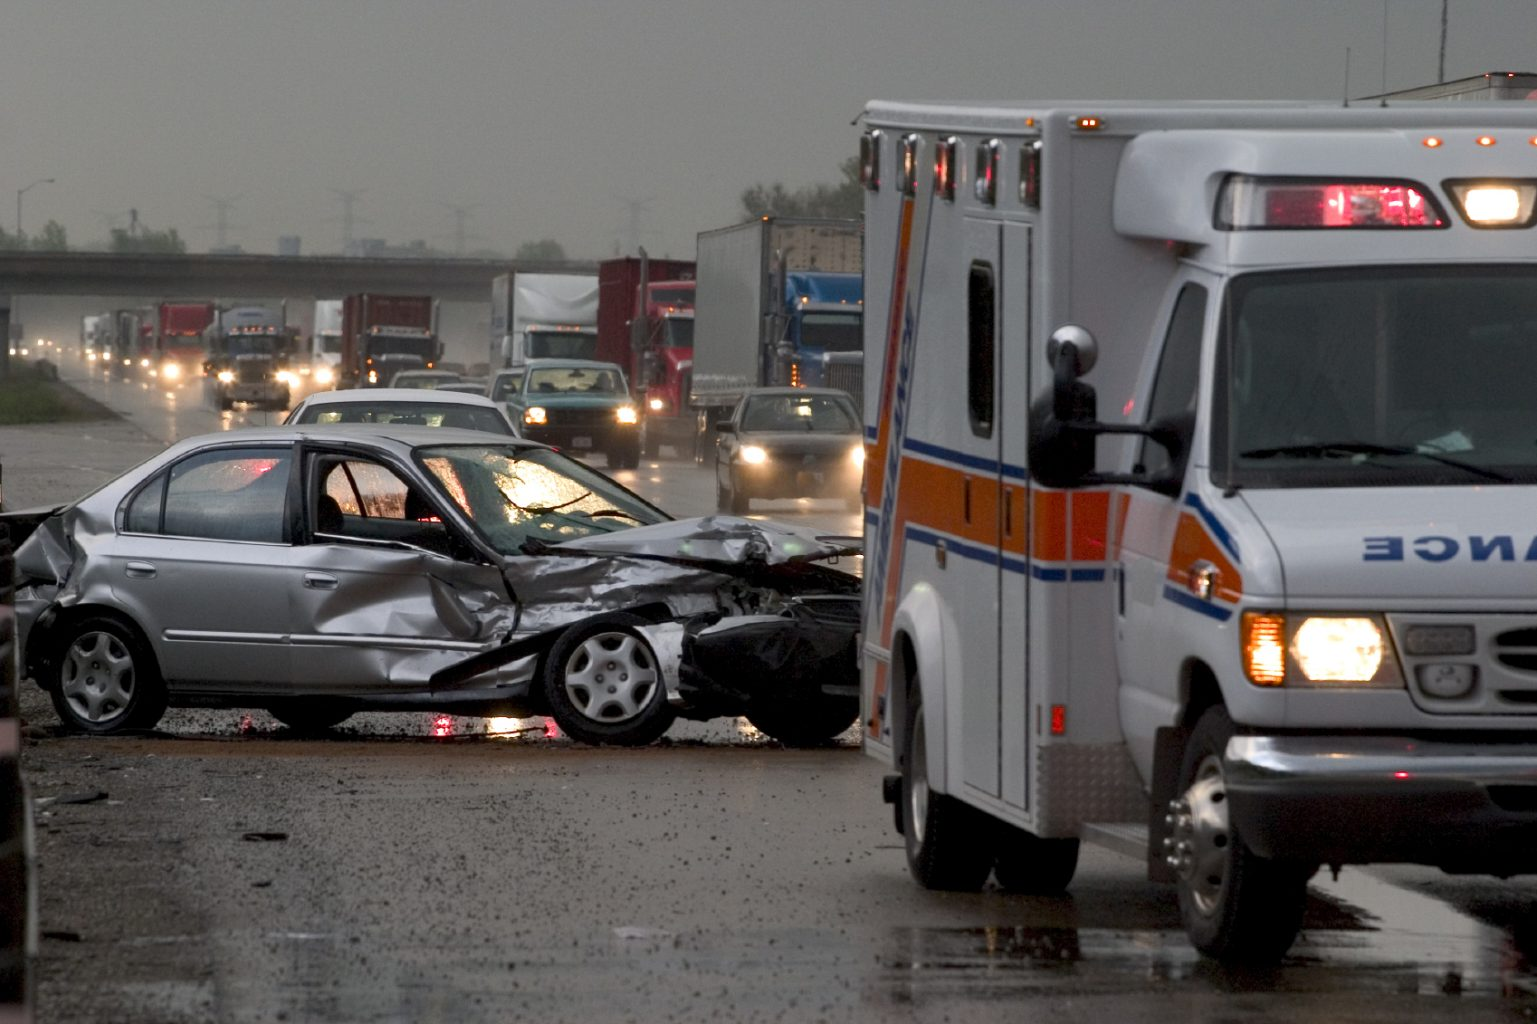 6 Things You Should Do in Case of a Car Accident